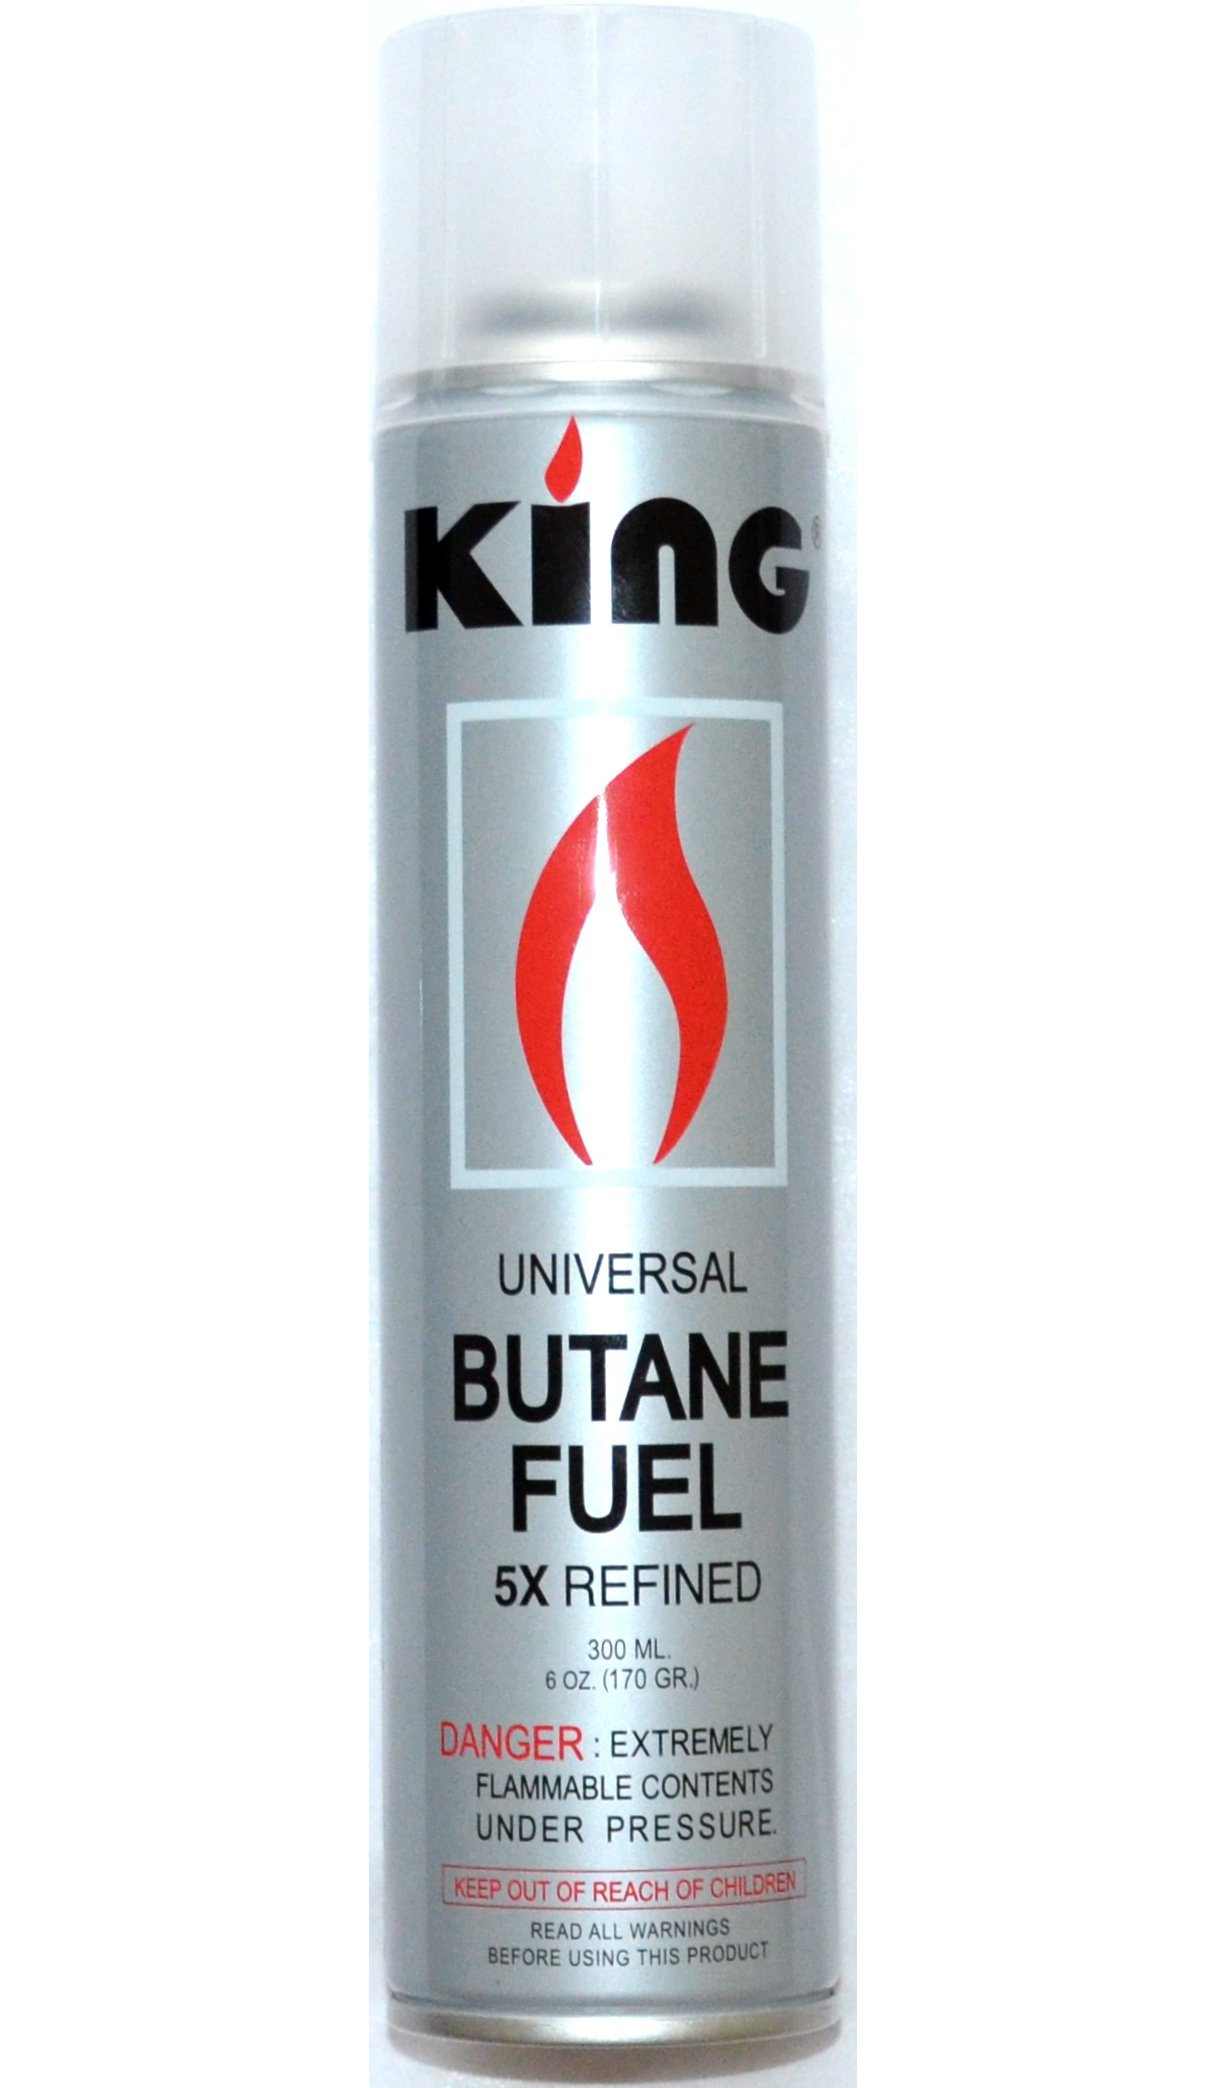 12 Pack of King Butane 5x Quintuple Refined Refill by KING (Image #1)